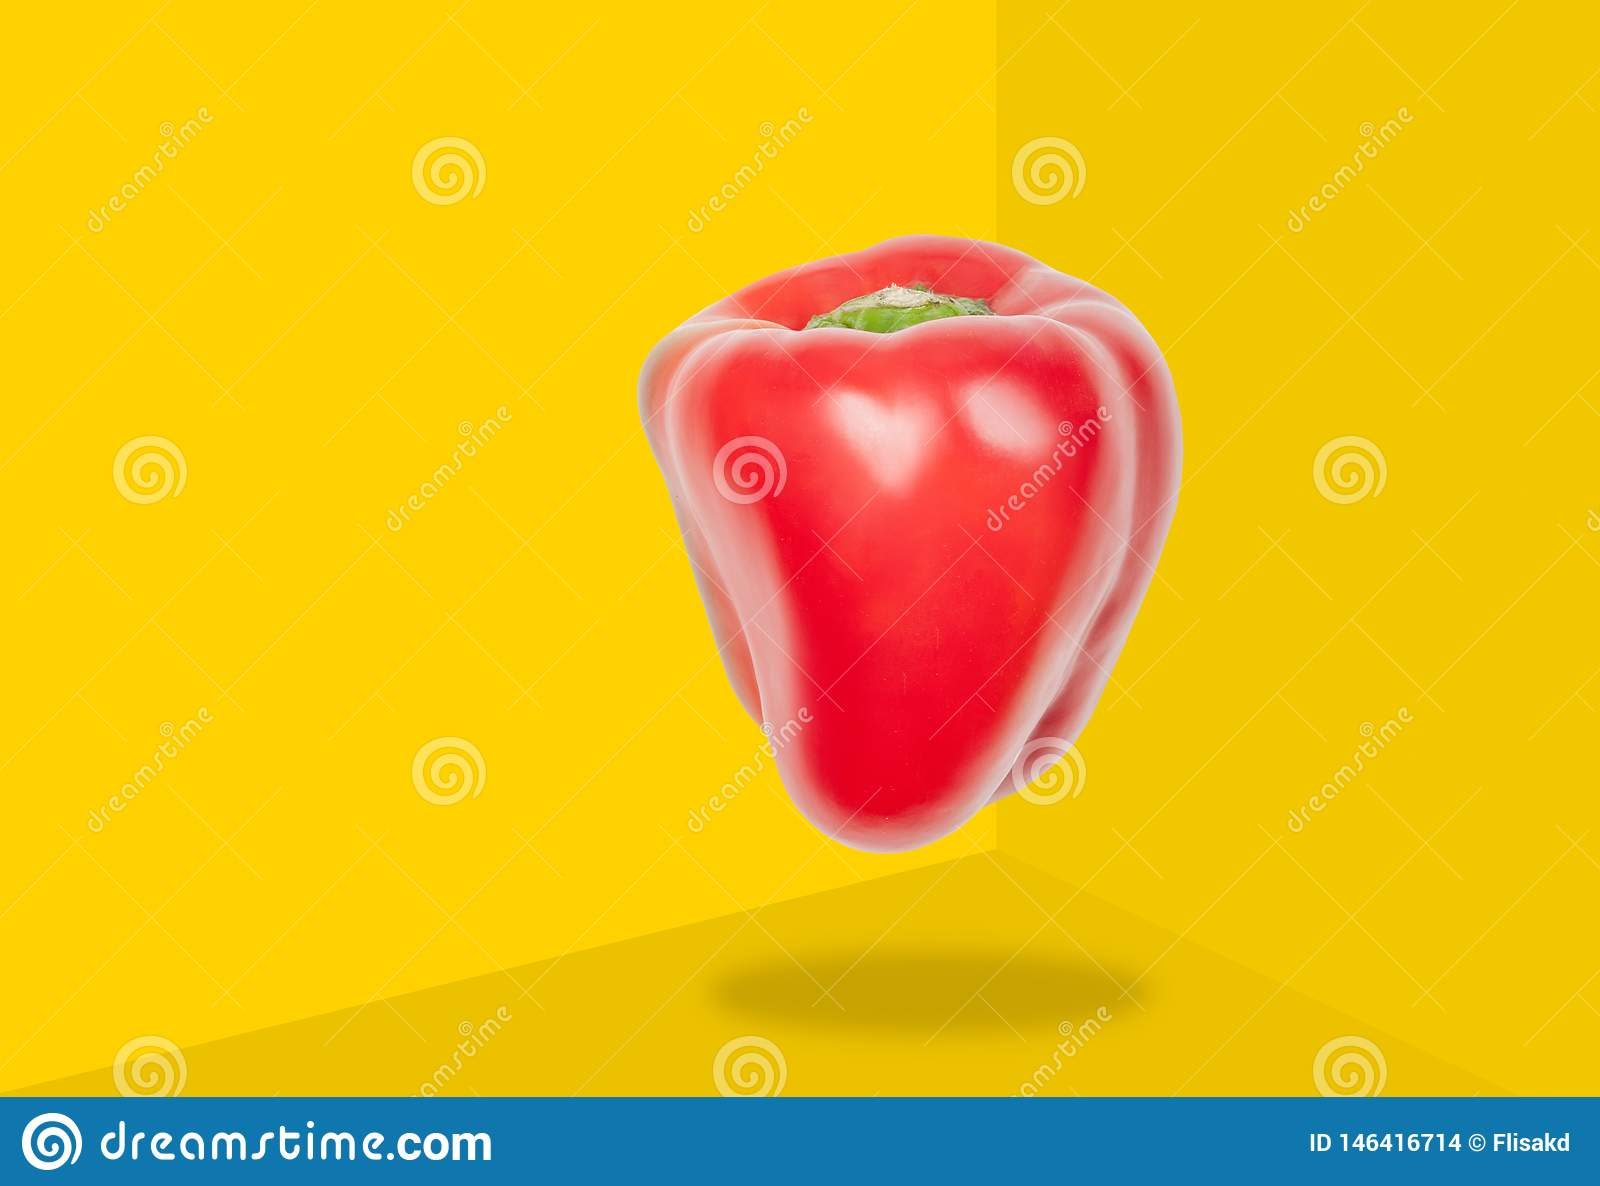 Red pepper levitate in air on yellow background. Concept of vegetable levitation